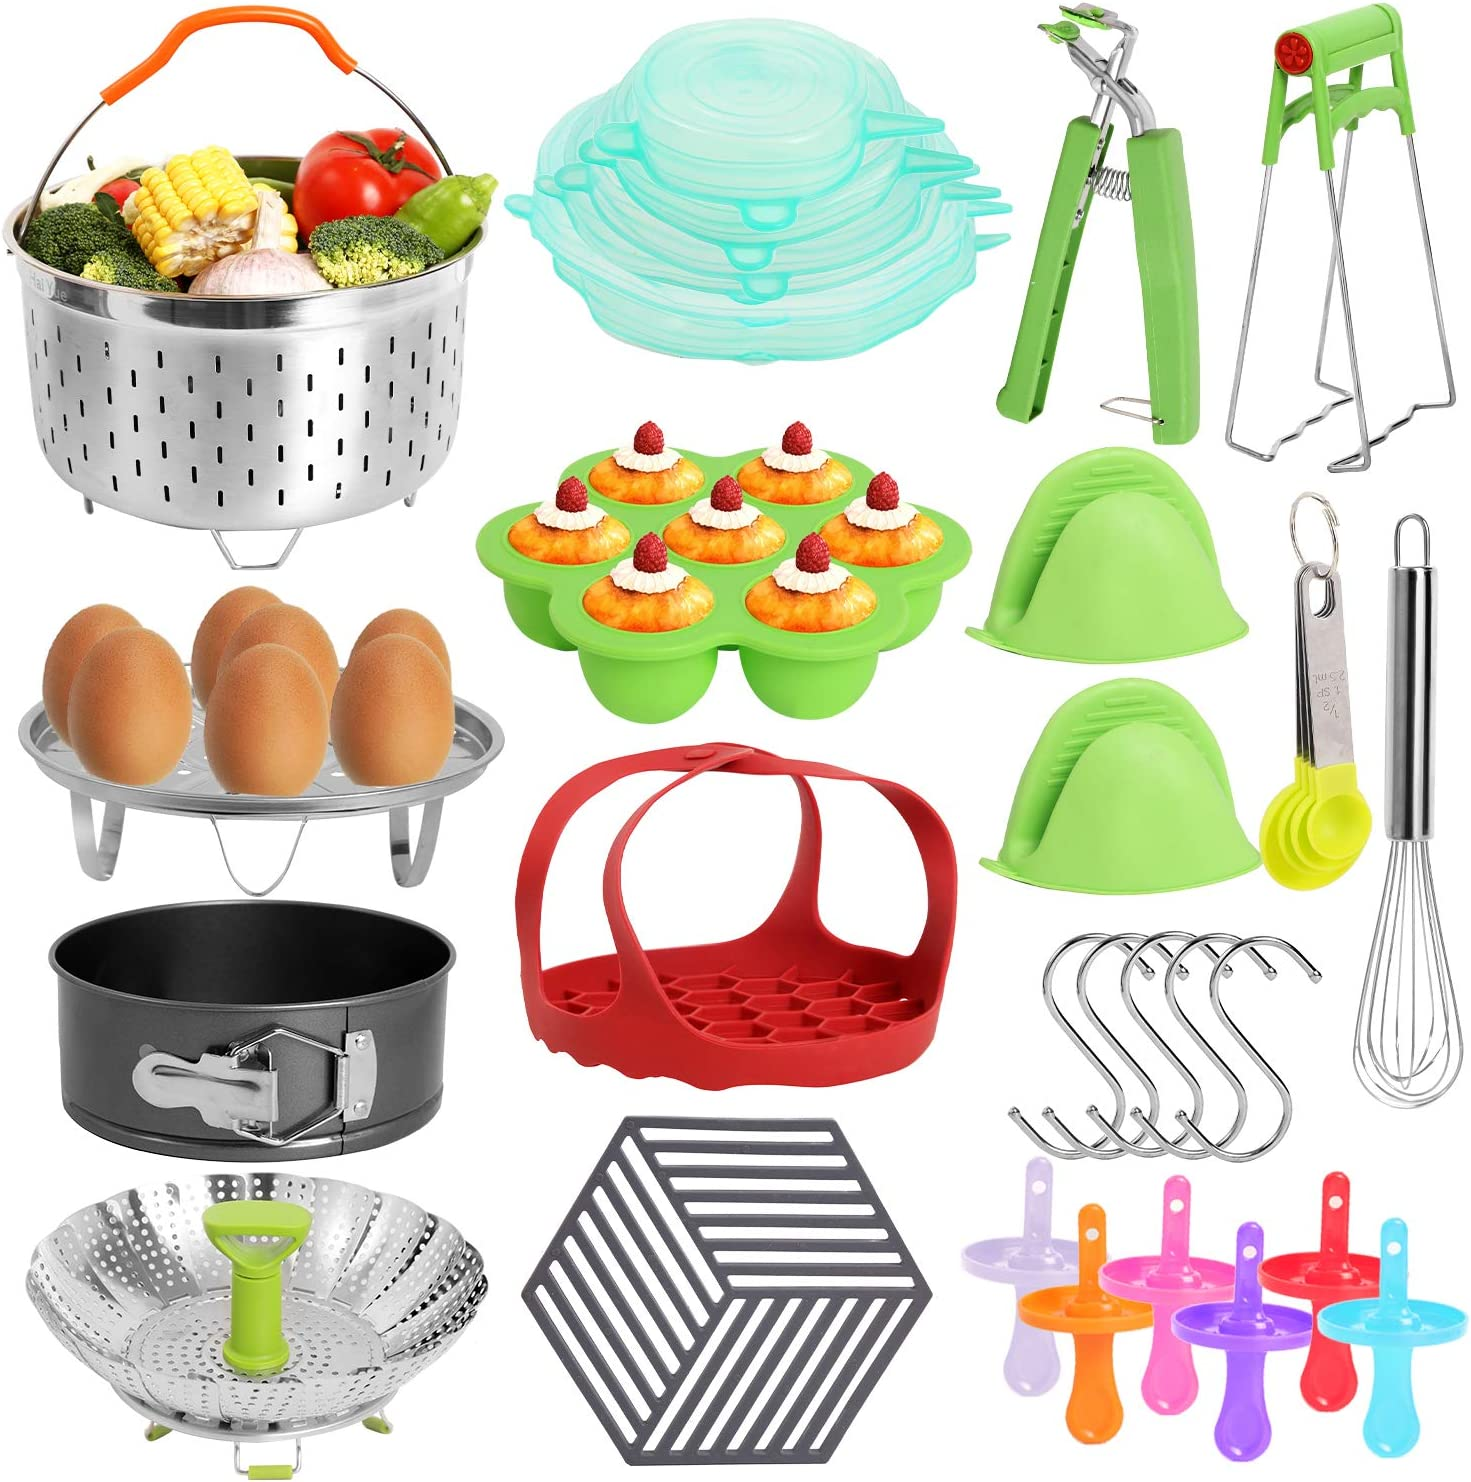 Instant Pot,Pressure Cooker5/6/8 quart 27Accessories,Steamer Baskets,Ninja Foodi Air Fryer, Egg Bites,Silicone molds for Sling Bakeware Lifter,Muffin,Kitchenette Cooking Tong,Non-stick,Freshness lid